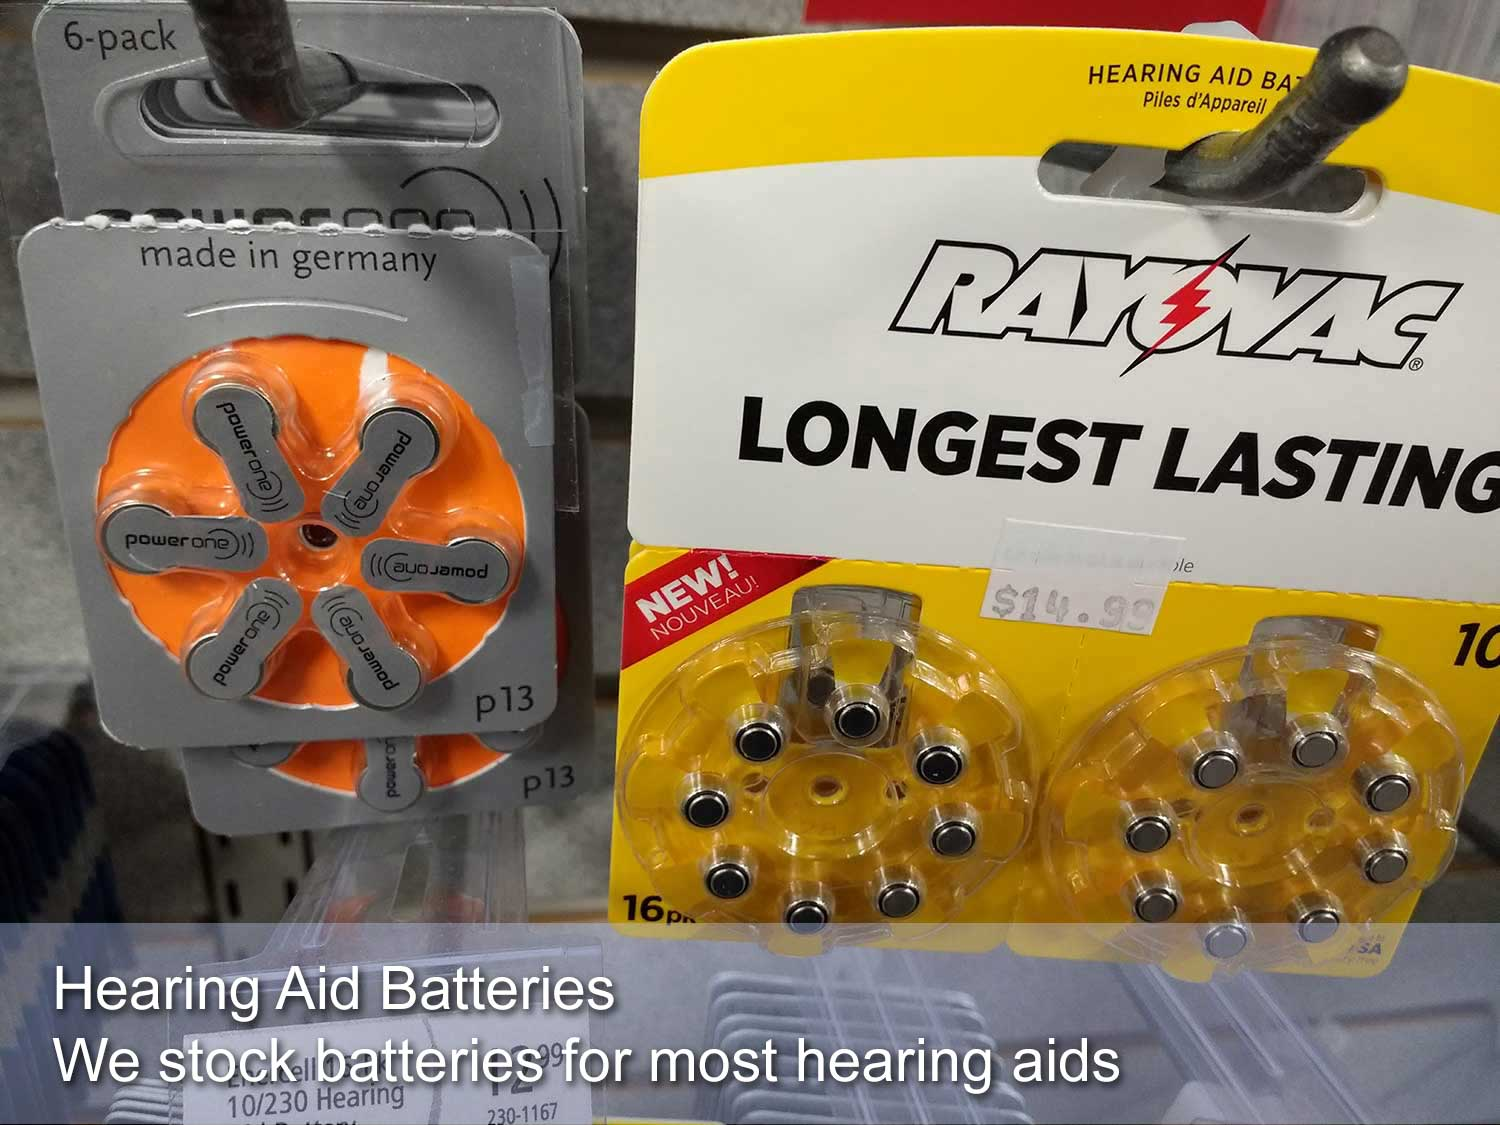 Batteries for most hearing aids are always in stock.